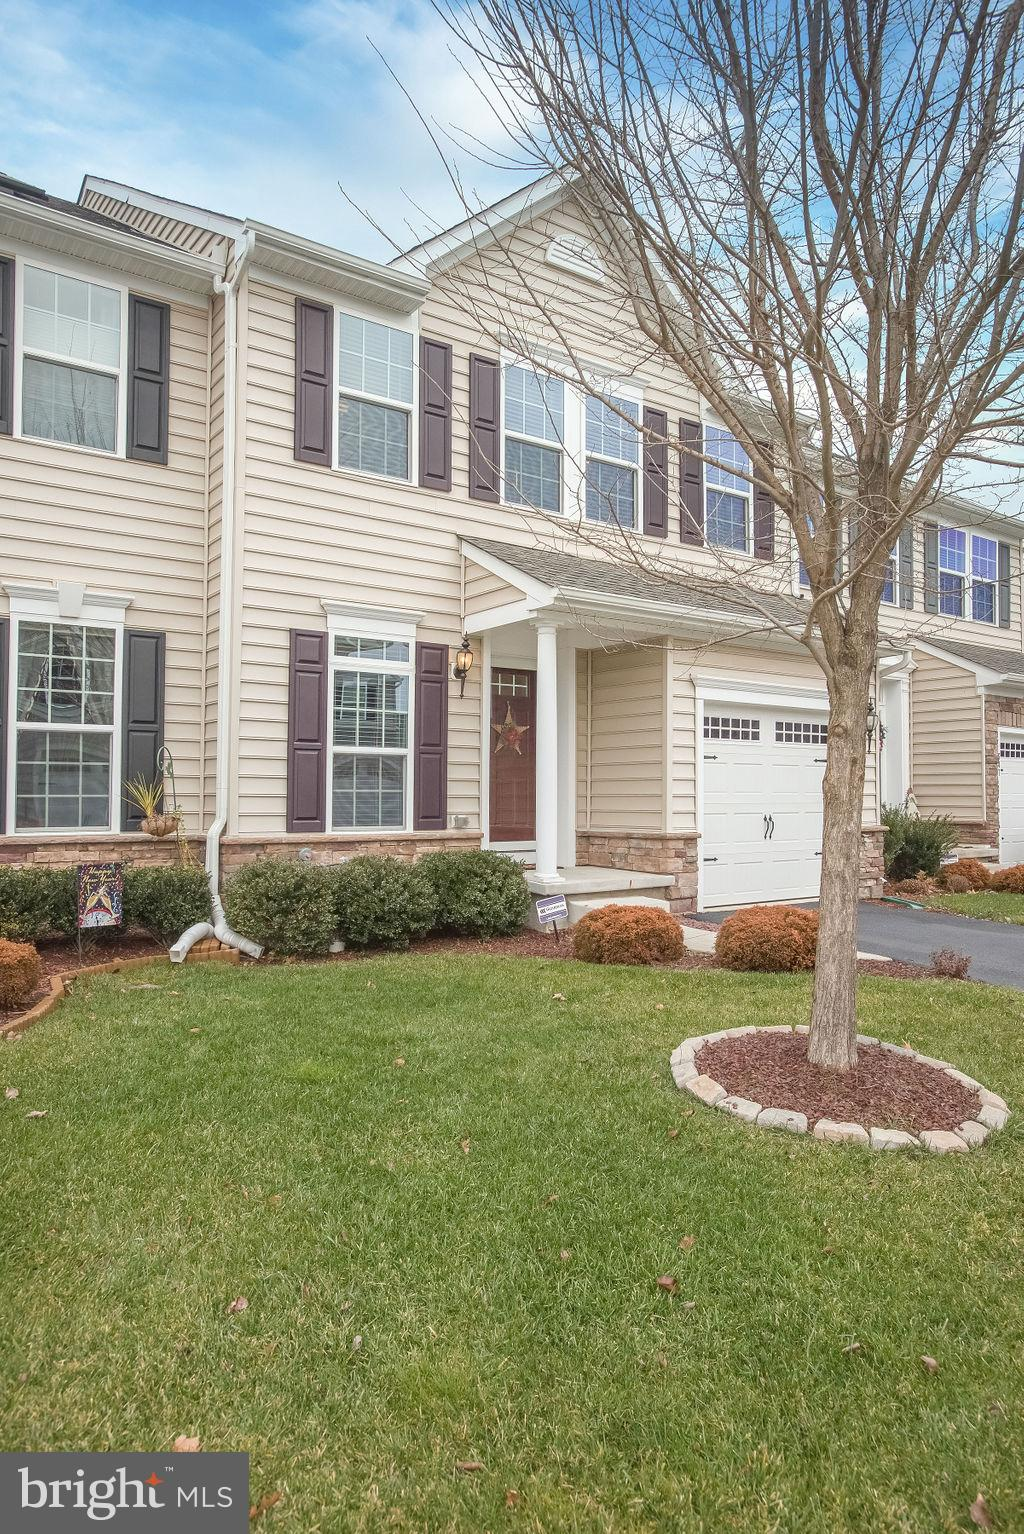 "Visit this home virtually: http://www.vht.com/434129161/IDXS - Absolutely gorgeous 3BR, 2.1BA townhouse with over 2600 sq ft awaits you in Canal View! As you enter you will love the extended hardwood floor in the foyer, living room, dining room, and the gourmet kitchen. The stunning kitchen includes upgraded 42"" cabinets, granite counters, tile backsplash, stainless steel appliances, and pendant lighting over the ""One-of-a-Kind"" Black Walnut extended breakfast bar. The bright and welcoming family room is perfect for relaxing or entertaining. Upstairs offers a generous master en suite, as well 2 additional nice size bedrooms, full bathroom and laundry room. Finished basement is perfect for your game room, movie viewing, etc and there is a rough in for another bathroom. Backing up to the C&D Canal, this home is in the ideal location with amazing views all year round from your trex deck. You can retire your lawnmower & snow shovel - it's included in the HOA! This beautiful home will not last - Only available due to transfer! Please follow all COVID-19 precautions. Masks must be worn. Please sanitize. Please keep showings to 30 minutes and limit conversations while in the property. Leave all lights as you find them. If you or your client is feeling ill, please do not tour the home. Please ensure your buyers are preapproved. Thank you for keeping our clients safe!"